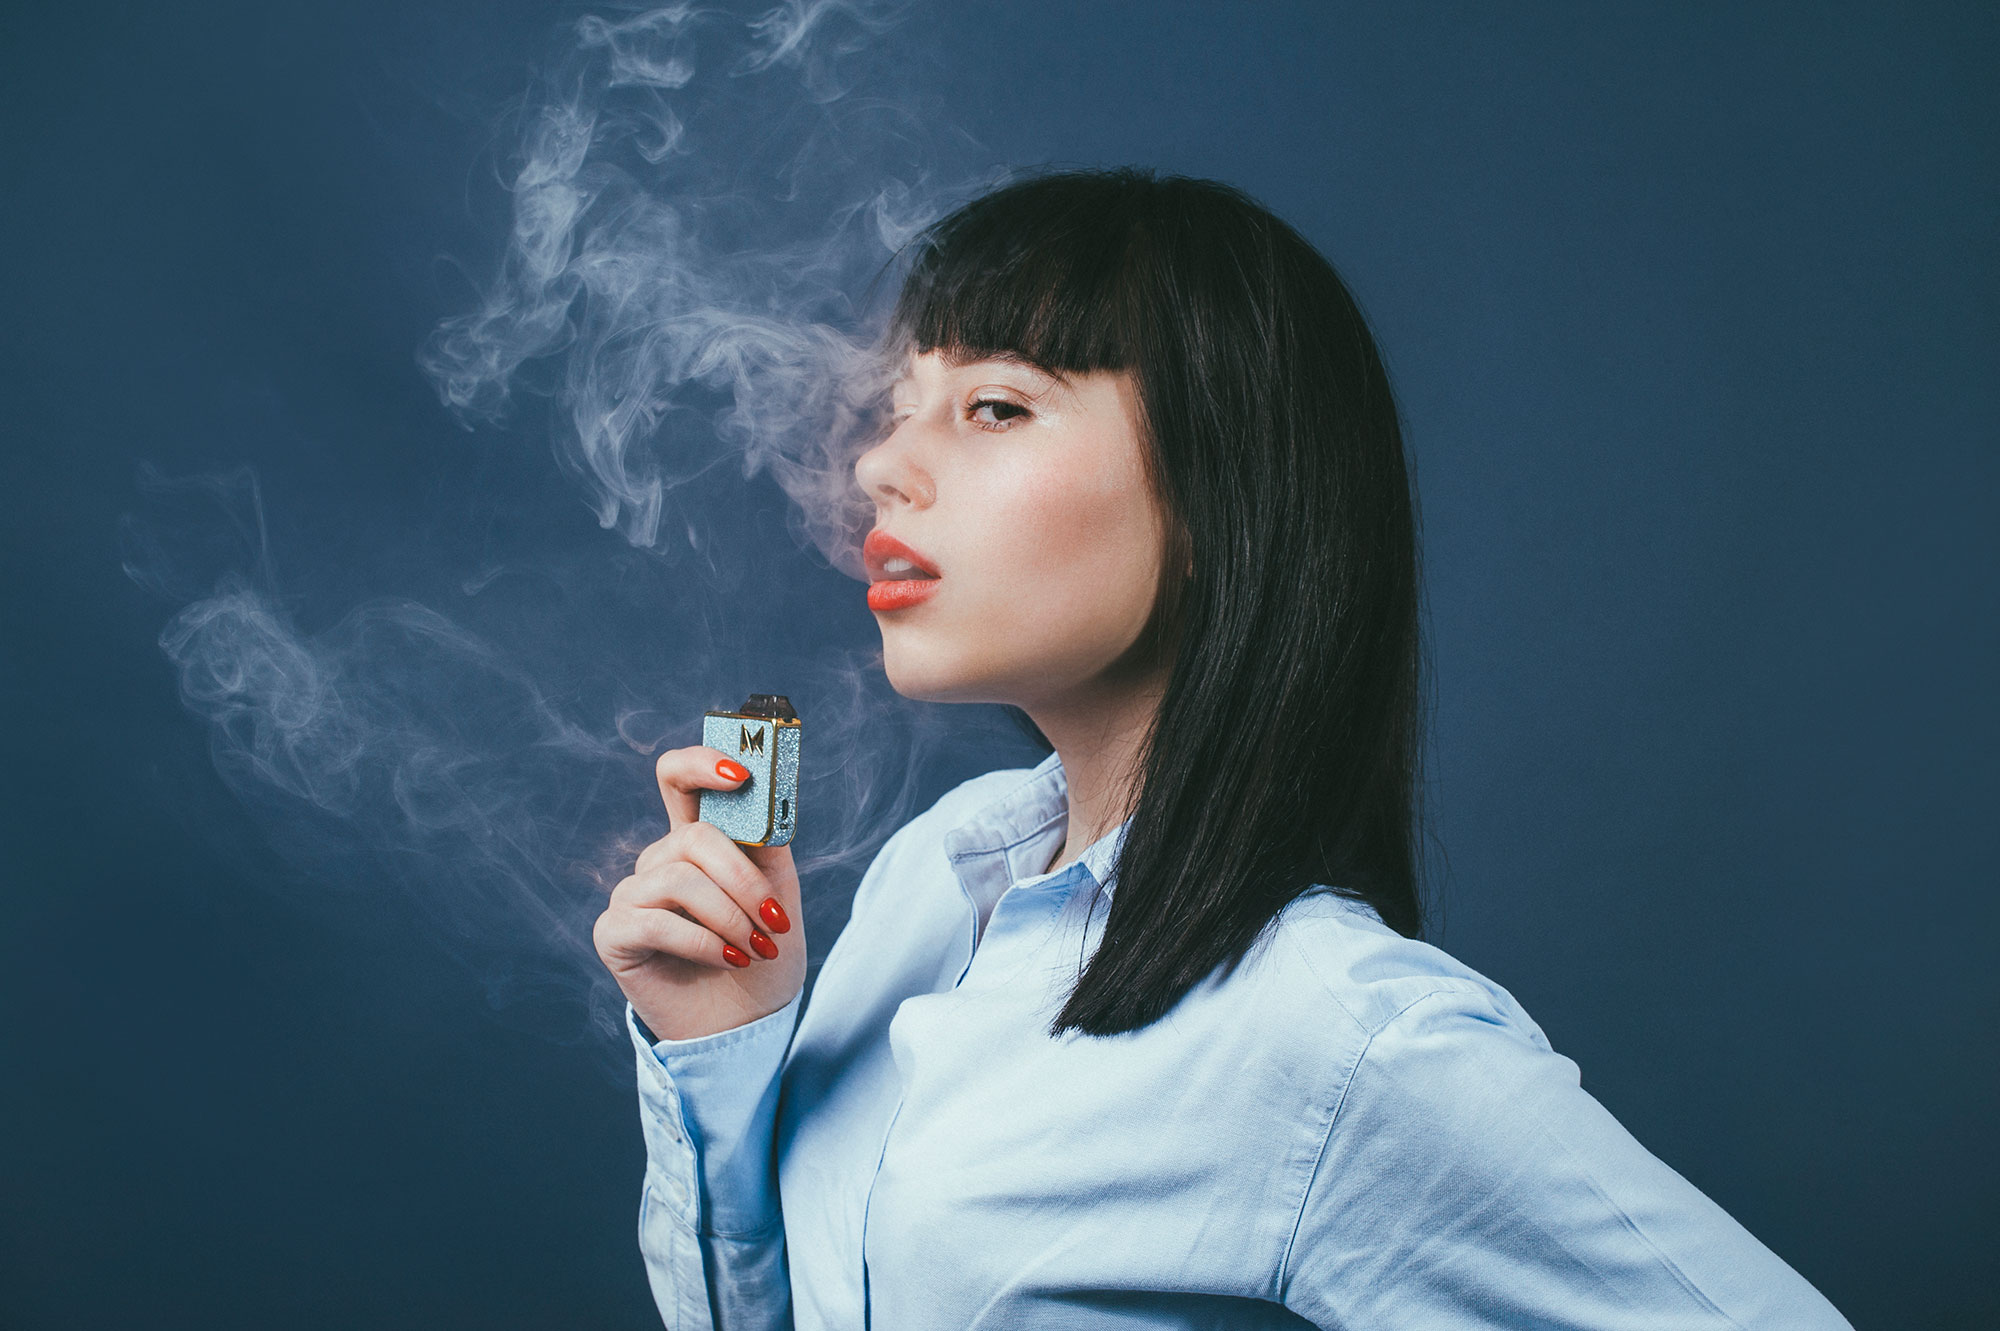 vaping half face blue girl